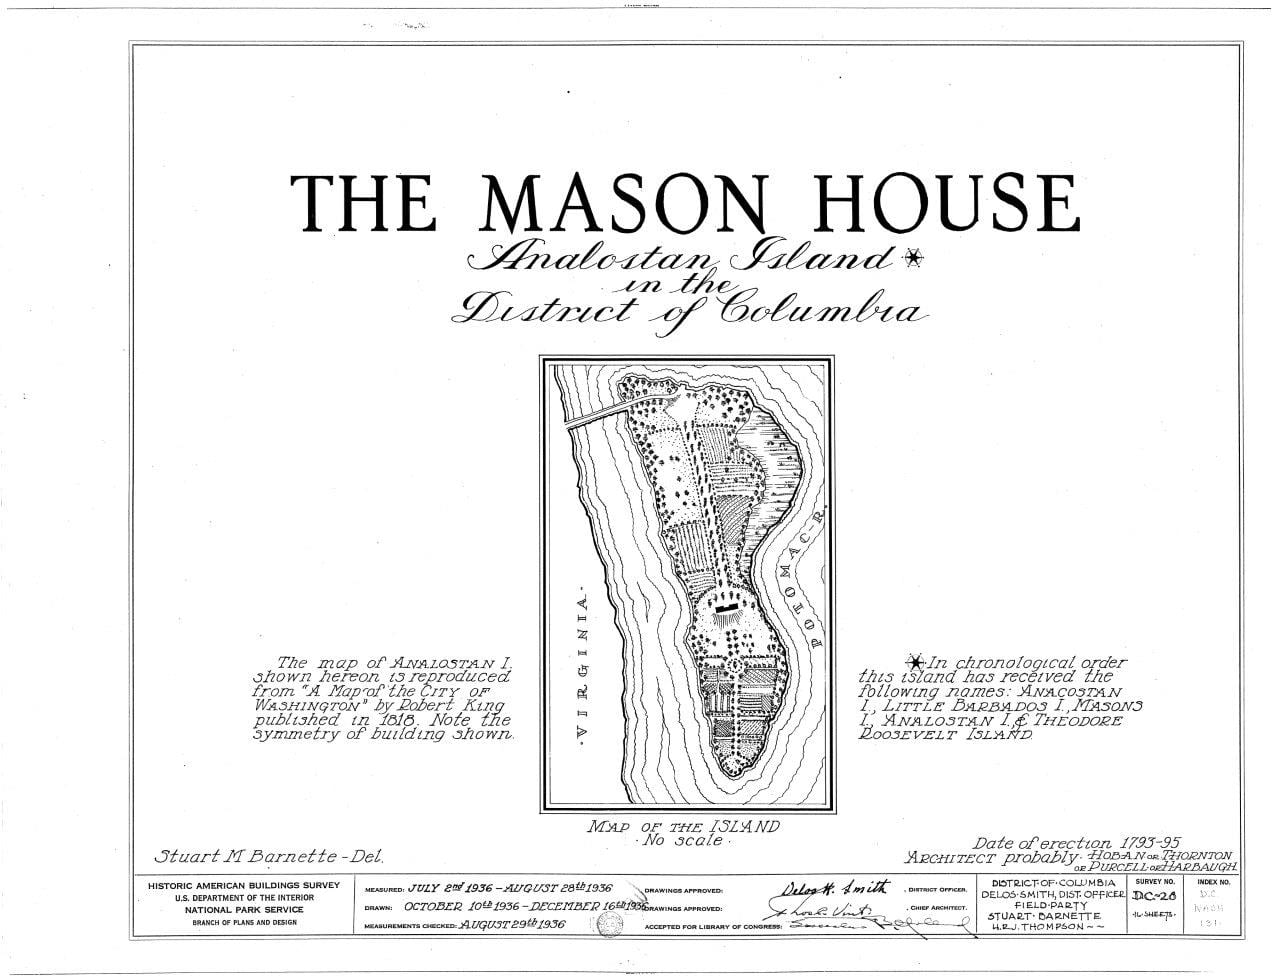 The Mason House on Analoston Island - 1903